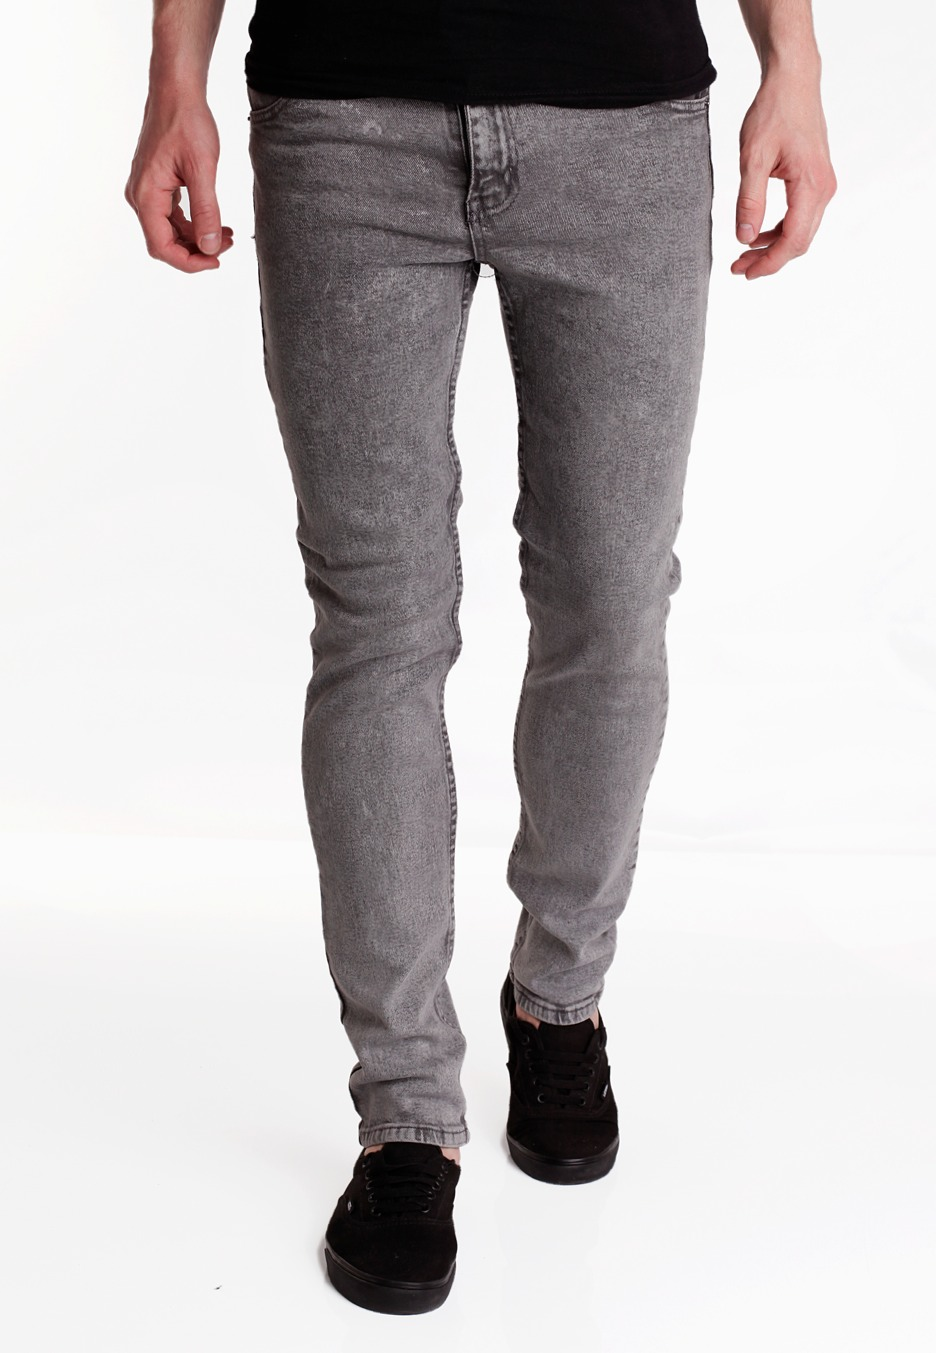 Cheap Monday - Tight Punk Grey - Jeans - Impericon.com UK